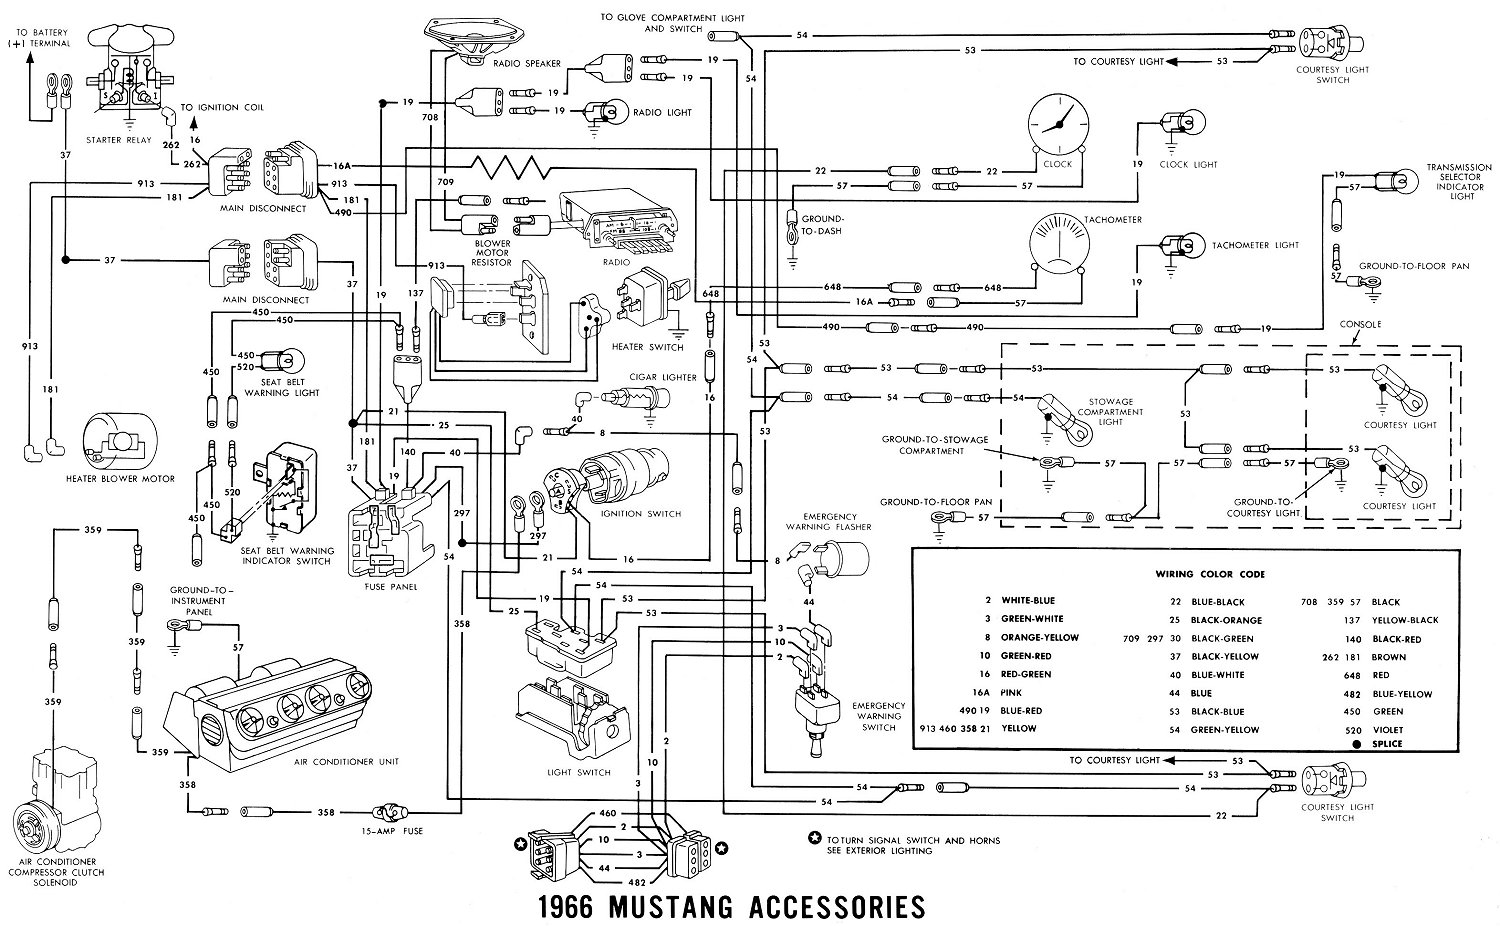 66acces1 1966 mustang wiring diagrams average joe restoration 2007 ford mustang gt wiring diagram at eliteediting.co